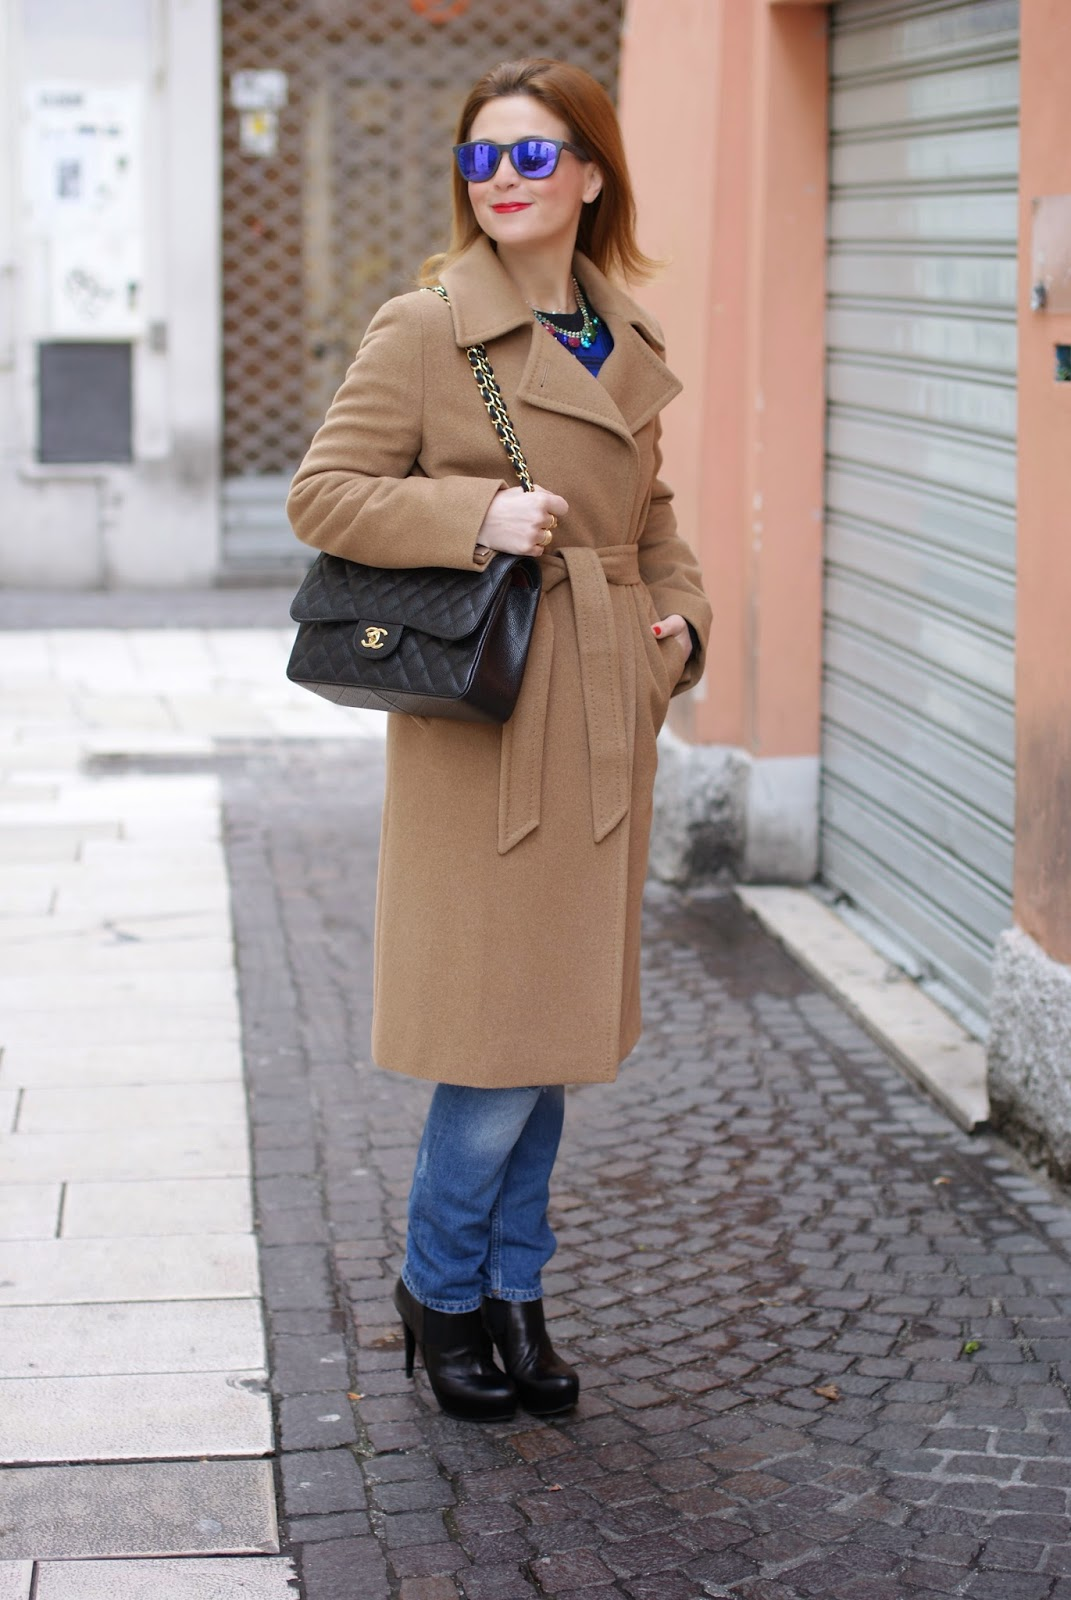 Max Mara cappotto cammello and Chanel 2.55 classic flap bag on fashion blogger Vale on Fashion and Cookies fashion blog